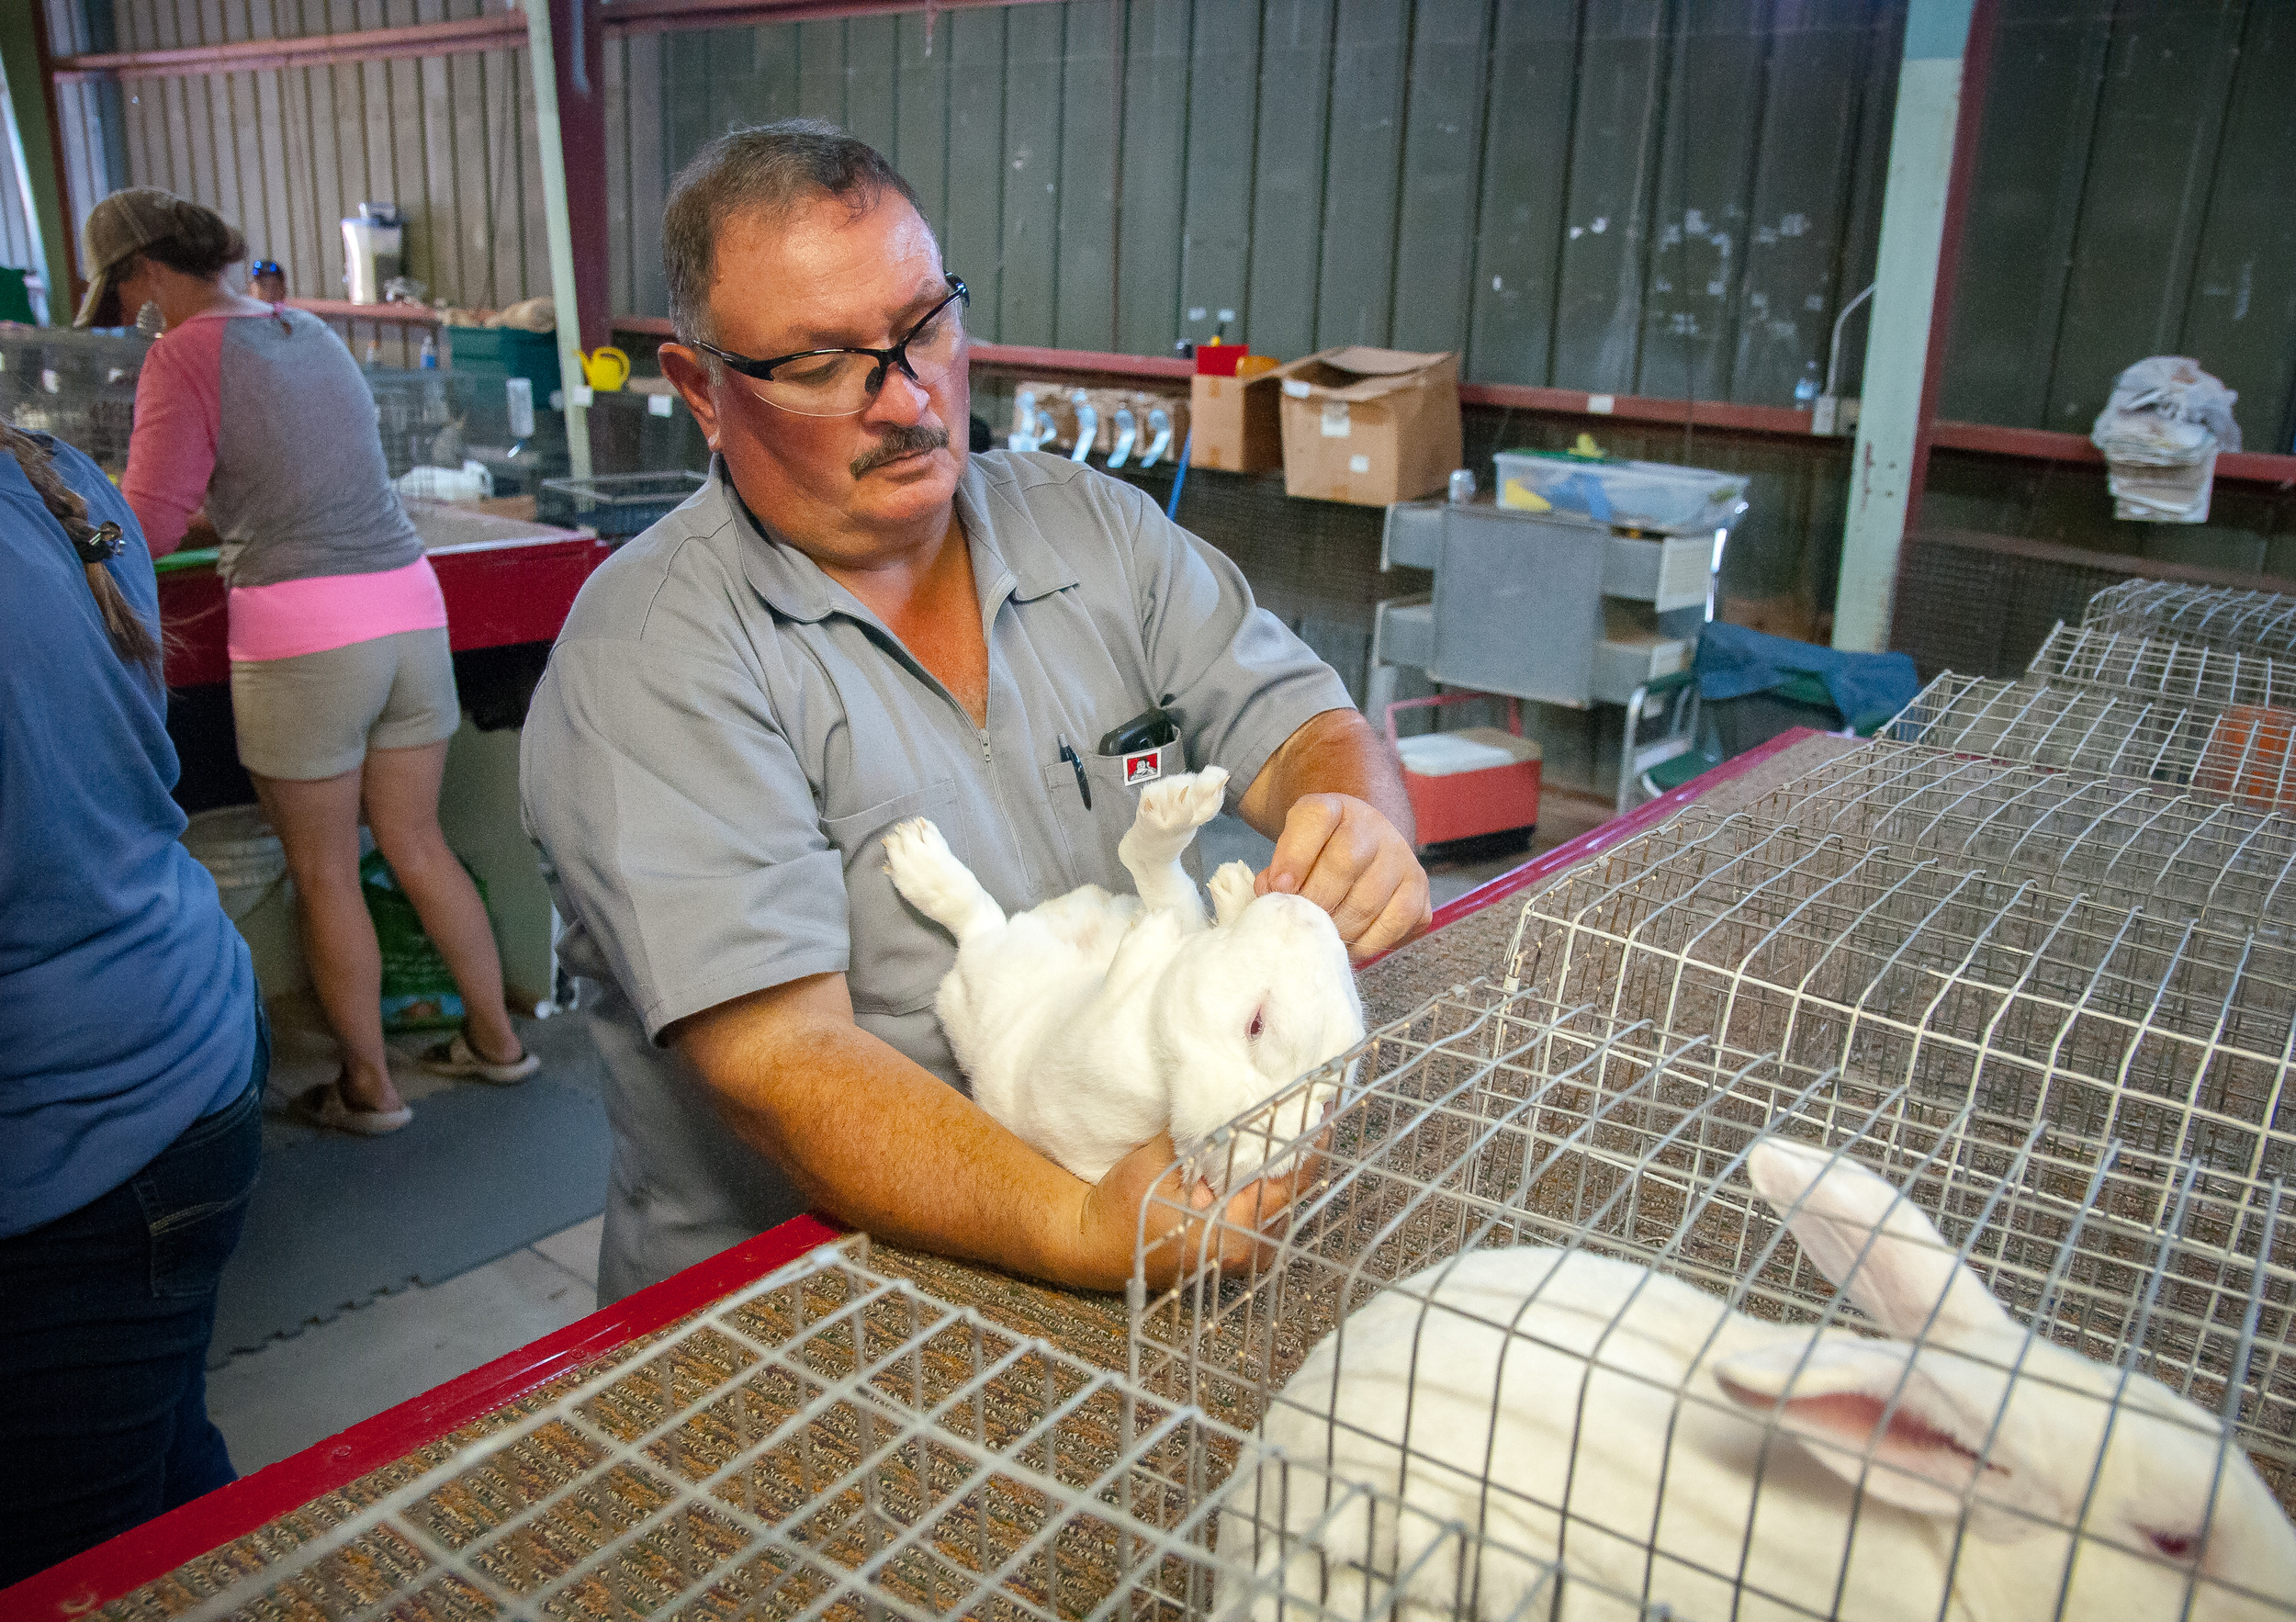 Southern New Mexico State Fair & Rodeo rabbit competition judge Mark Trujillo examines a rabbit on Wednesday. According to Trujillo the three main things he looks for in a rabbit are the quality of its flesh, disposition and fur, with fur being the most important.